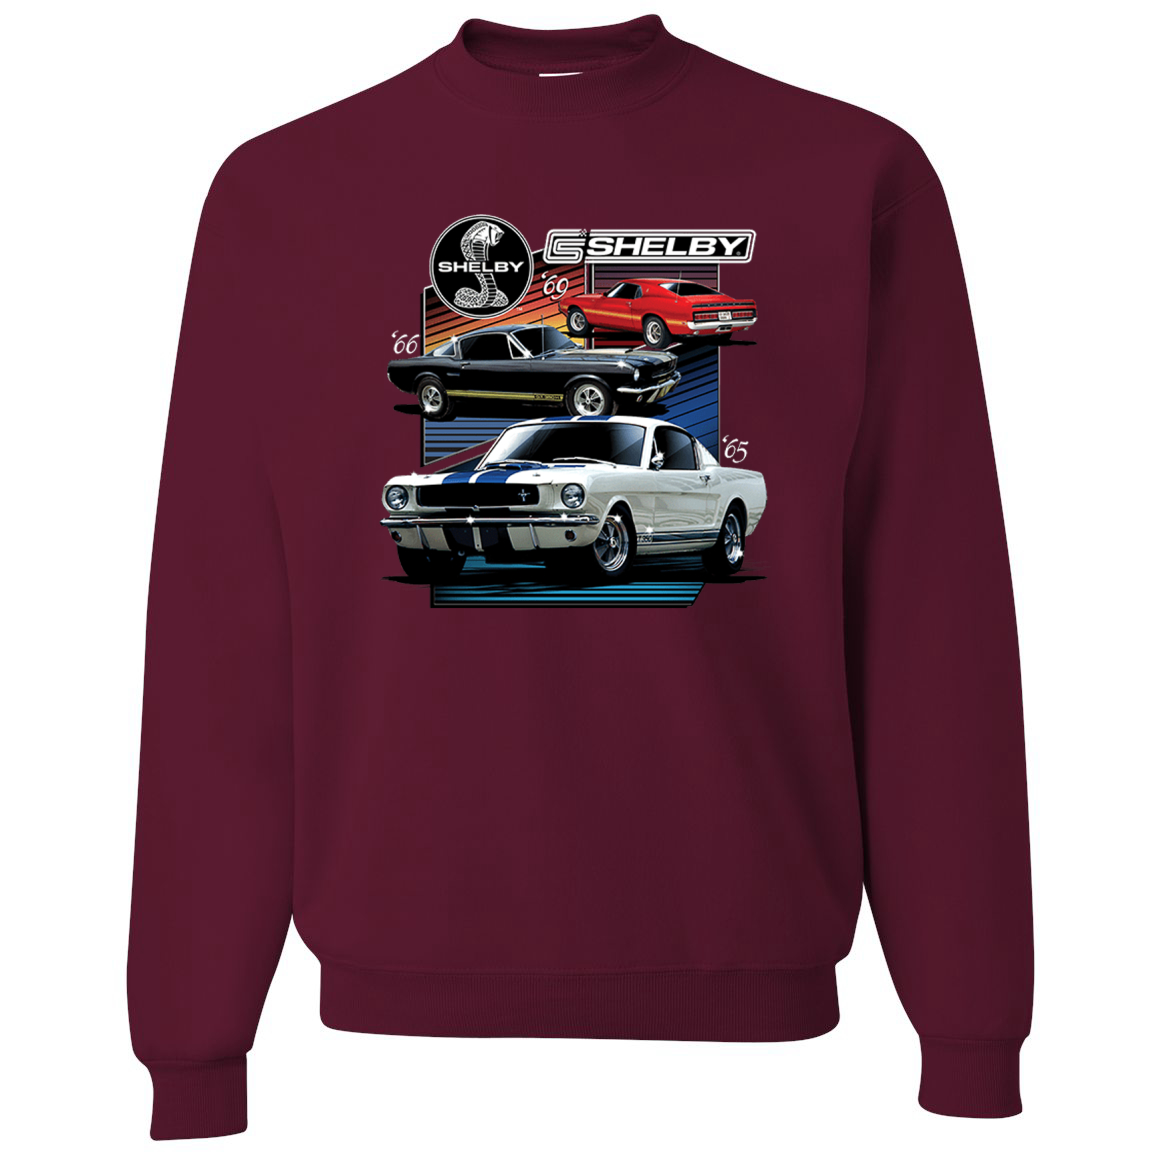 Shelby '69 Ford 65 Cobra Classic Vintage 1966 Muscle Cars Cars and Trucks Crewneck Graphic Sweatshirt